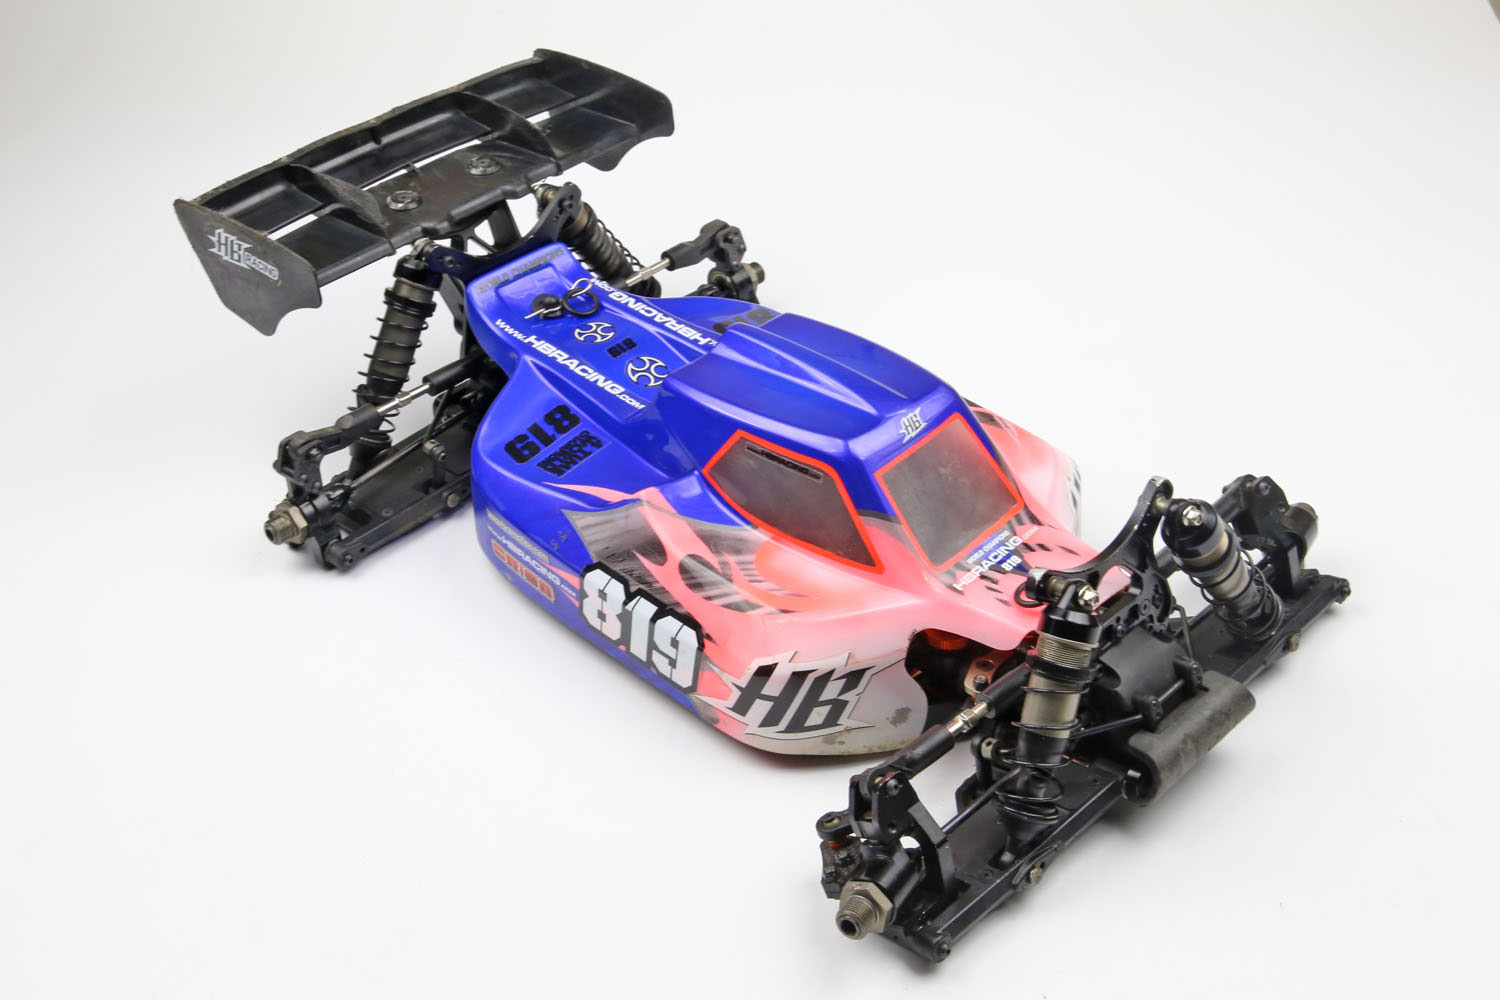 losi associated kyosho brushless occasion 2nd hand voiture telecommandee brushless remote car. Black Bedroom Furniture Sets. Home Design Ideas